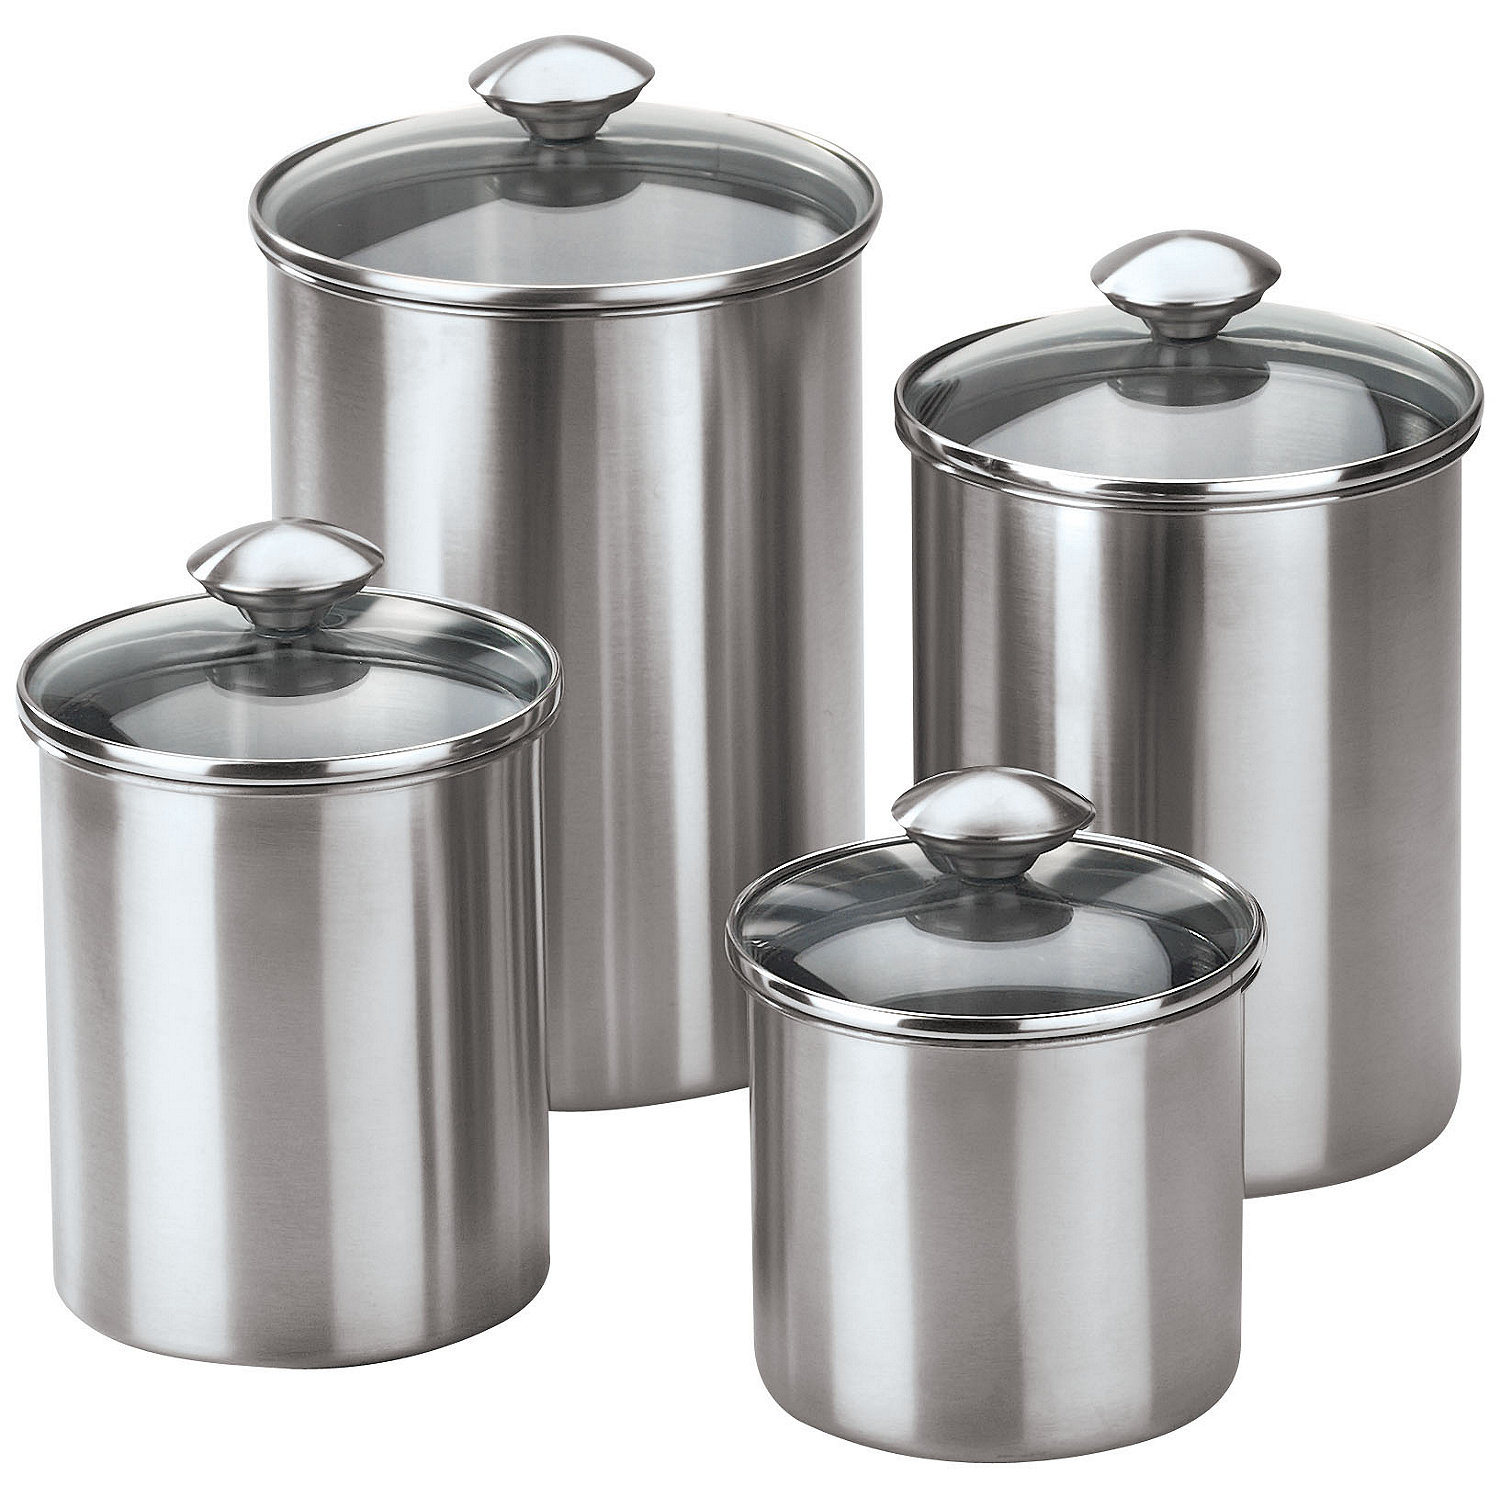 stainless steel canister sets kitchen 4 piece stainless steel modern kitchen canister set ebay 8346